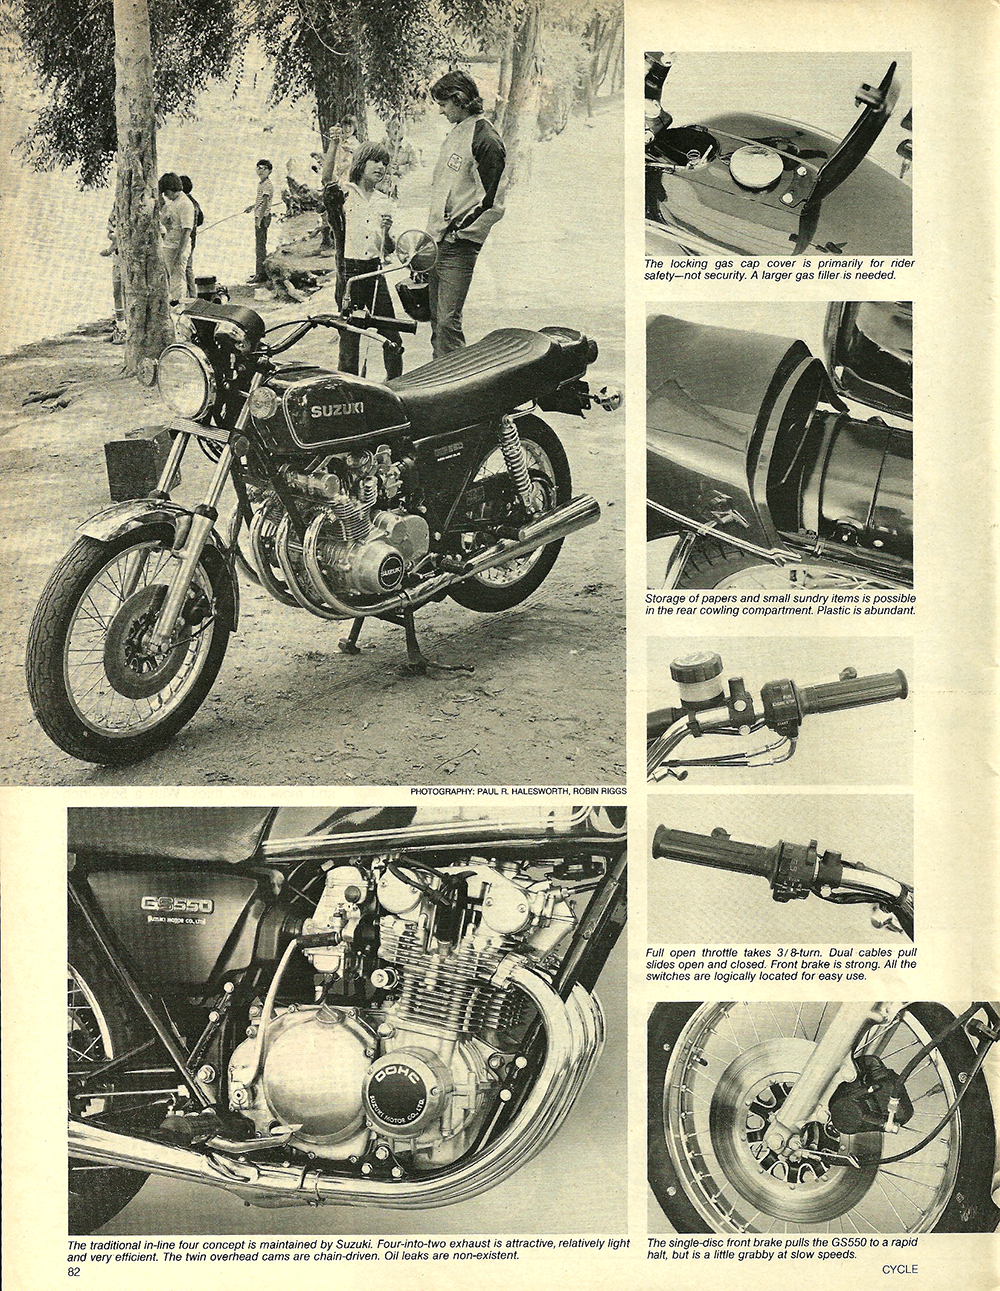 1977 Suzuki GS550 road test 03.jpg